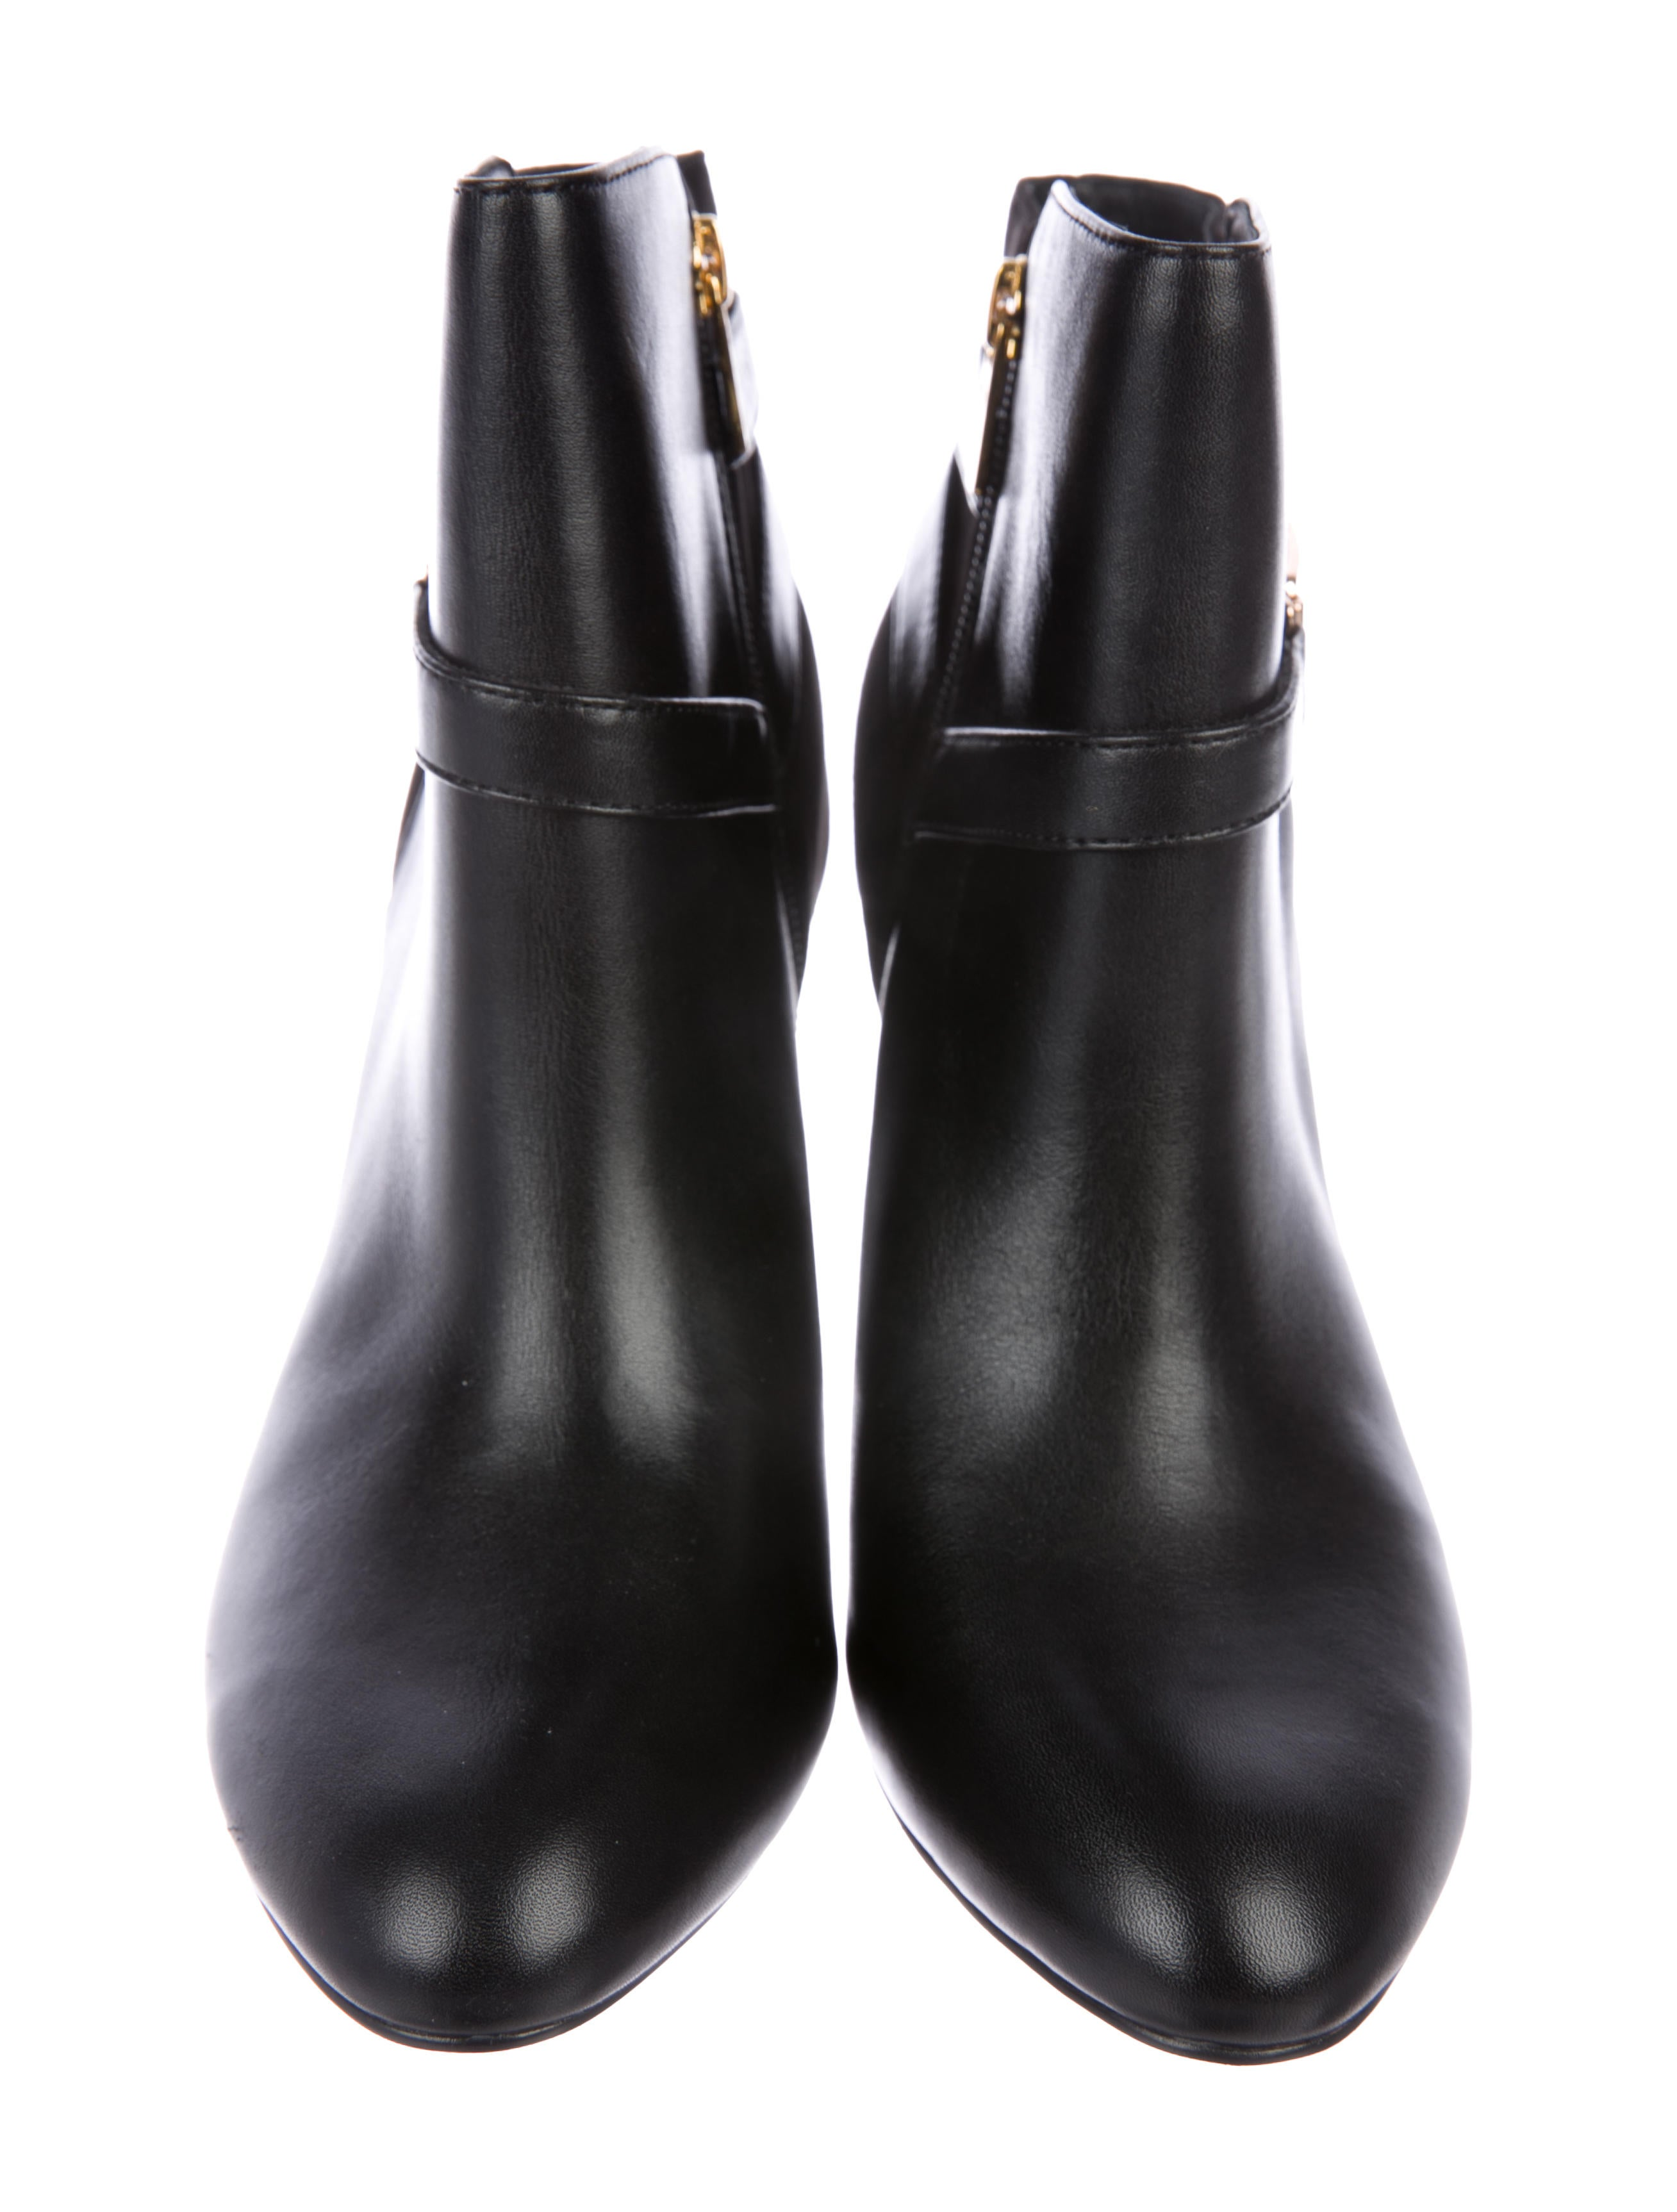 Isolda Leather Ankle Boots buy cheap store fBVq5CUy